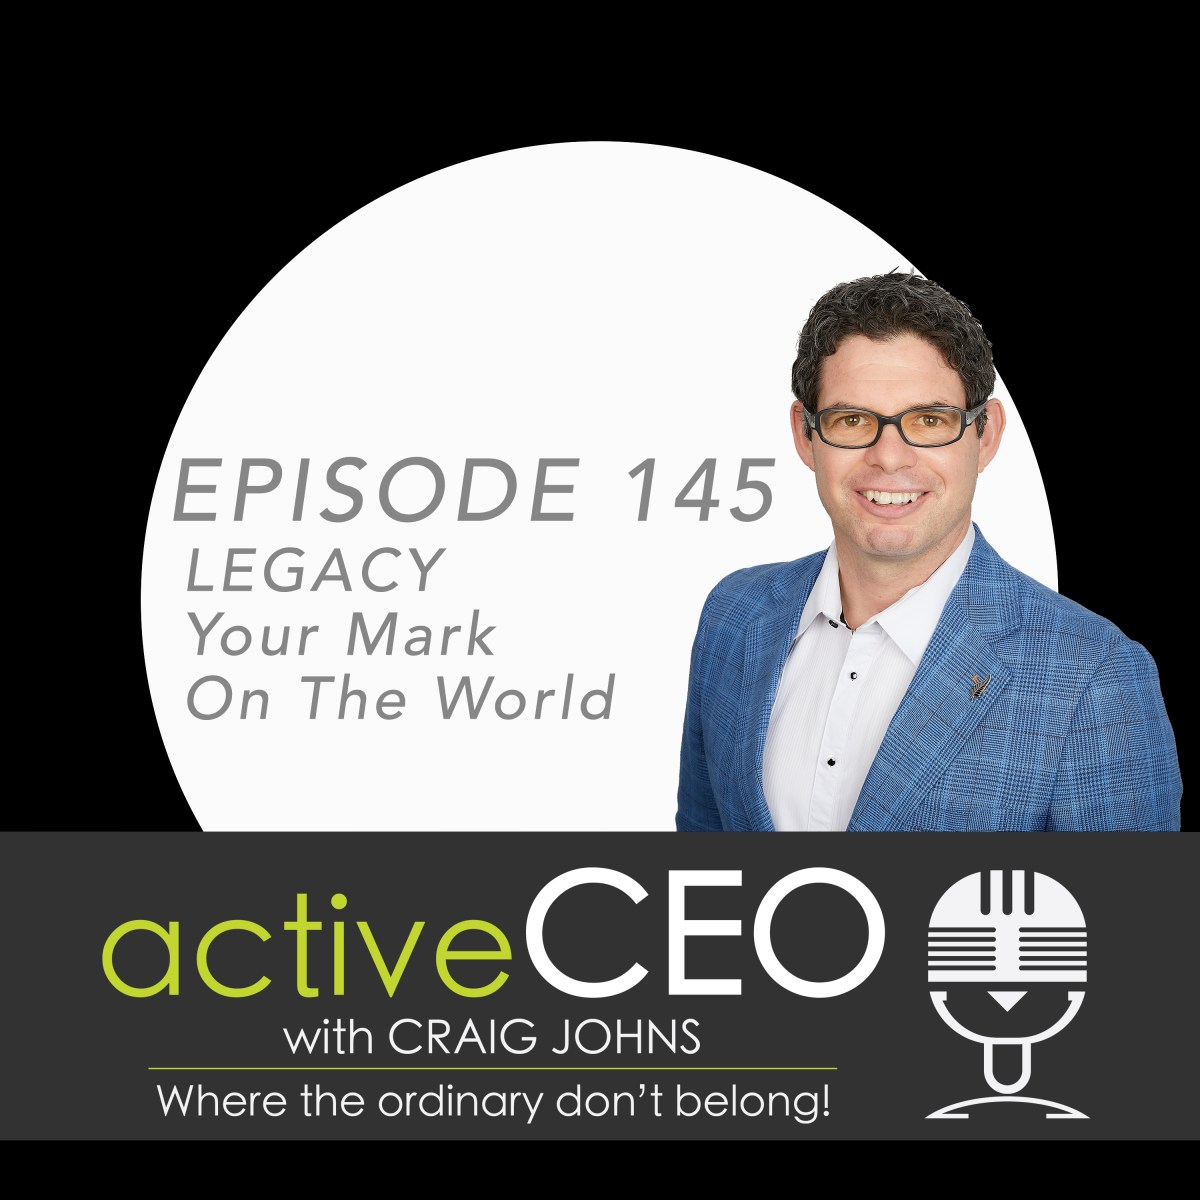 active CEO Podcast 145 Legacy Your Mark On The World